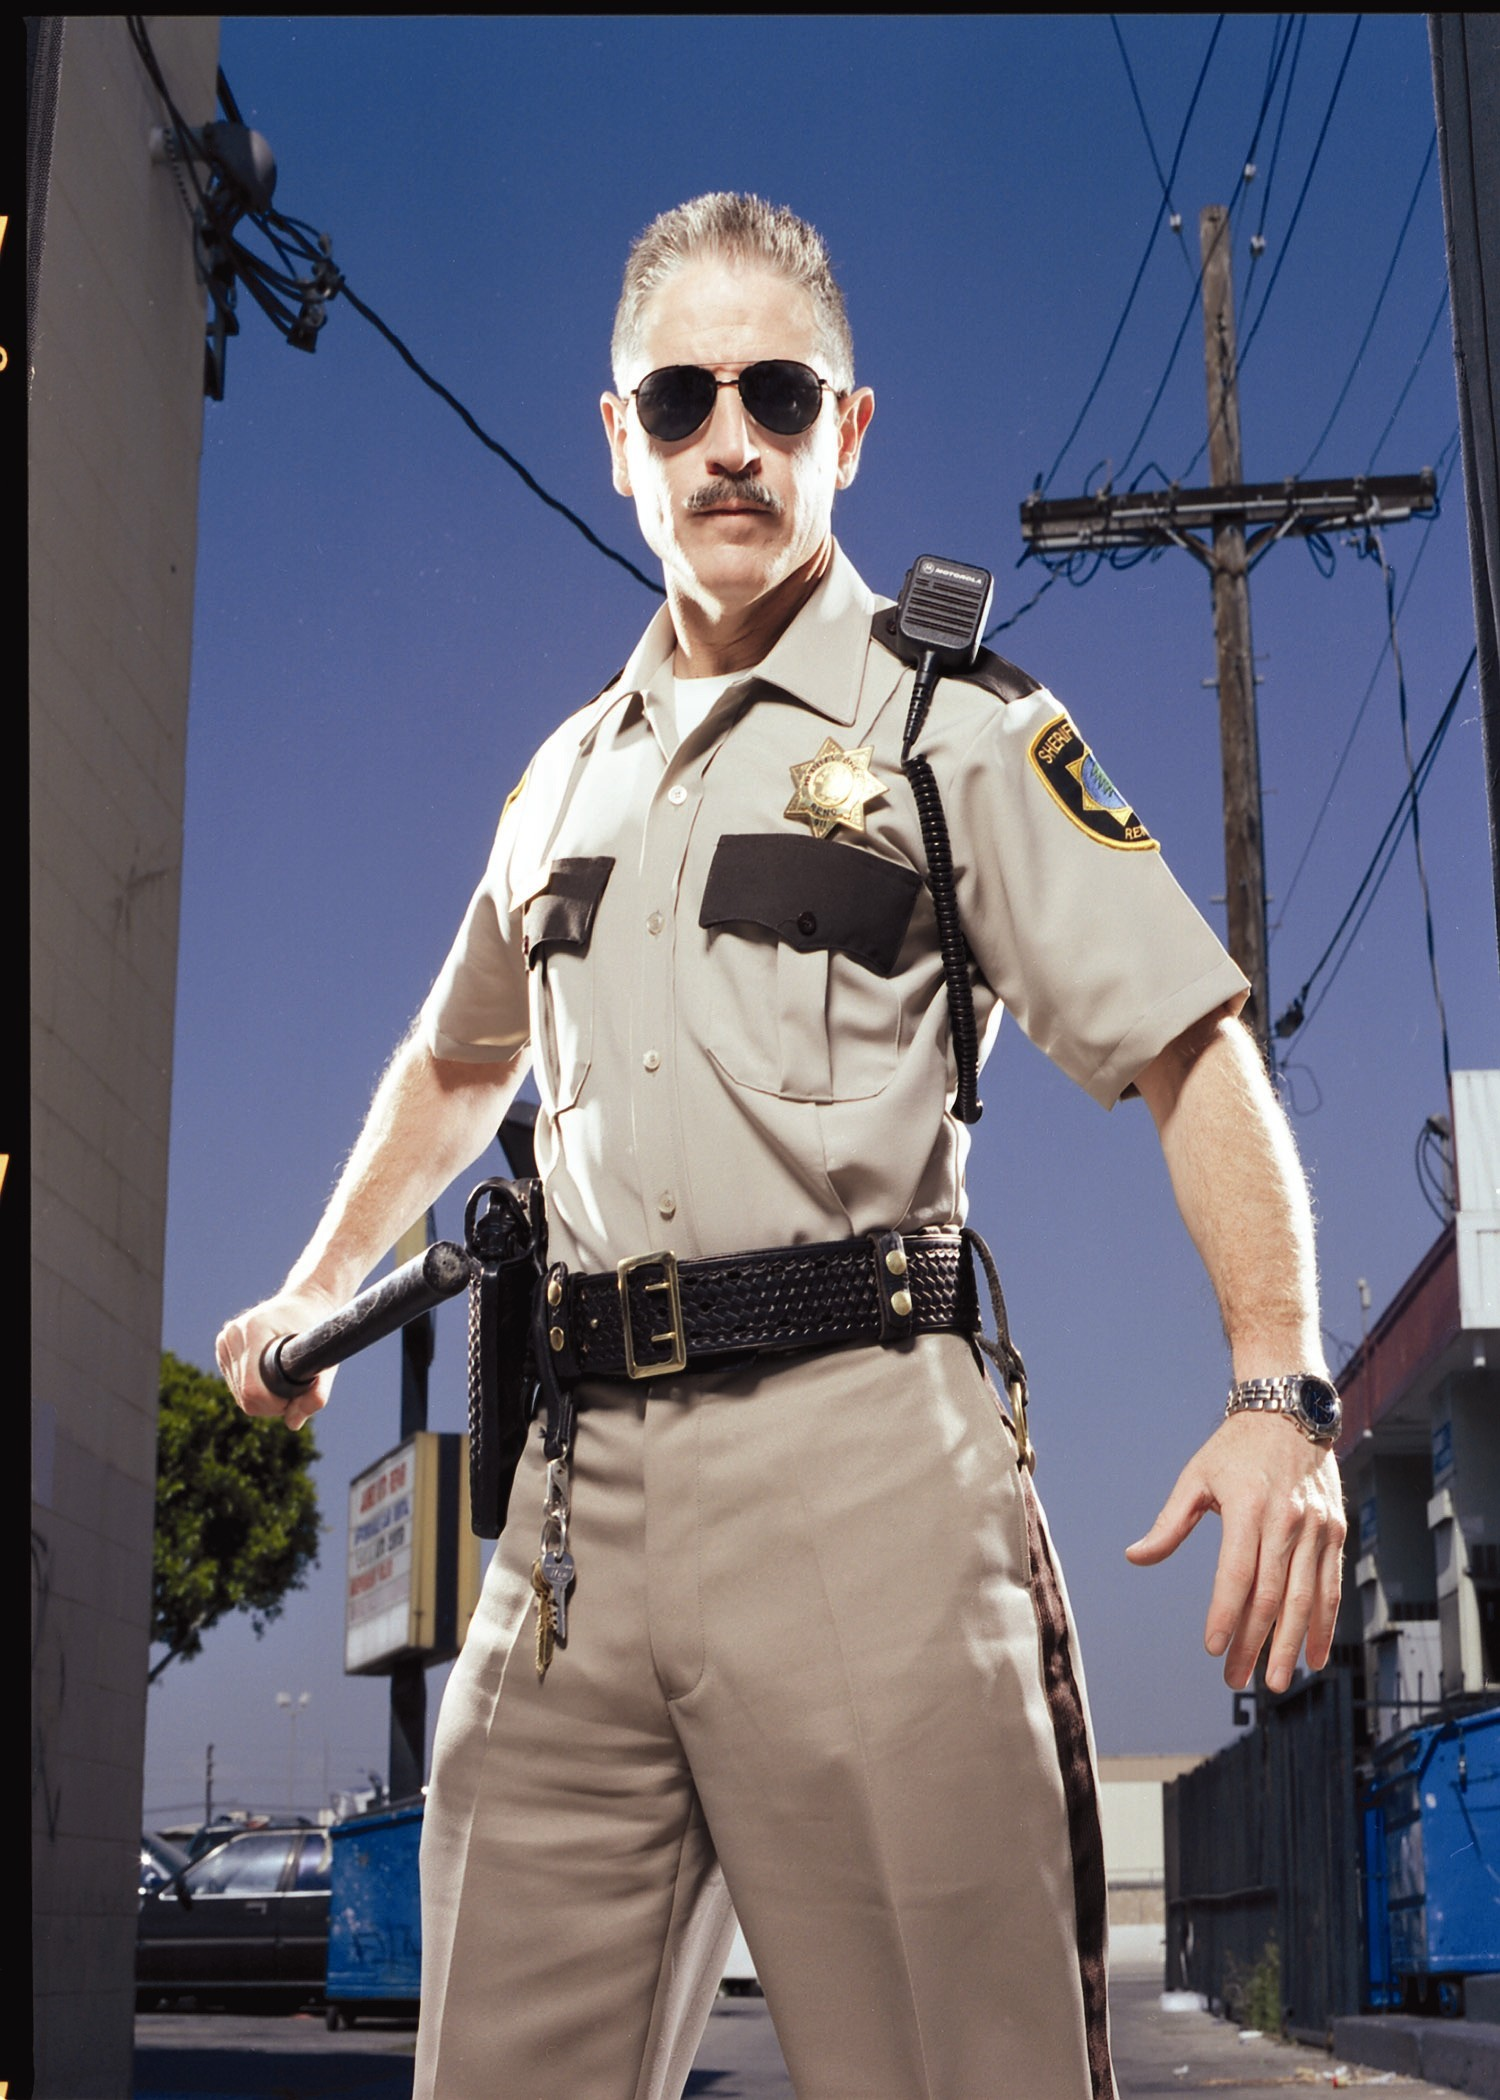 reno 911 clementine and garcia are dating - season : 2 episode 11 season 2 episode 11 - clementine and garcia are dating after getting it on with nearly every other man in reno, johnson finally hooks up with garcia.